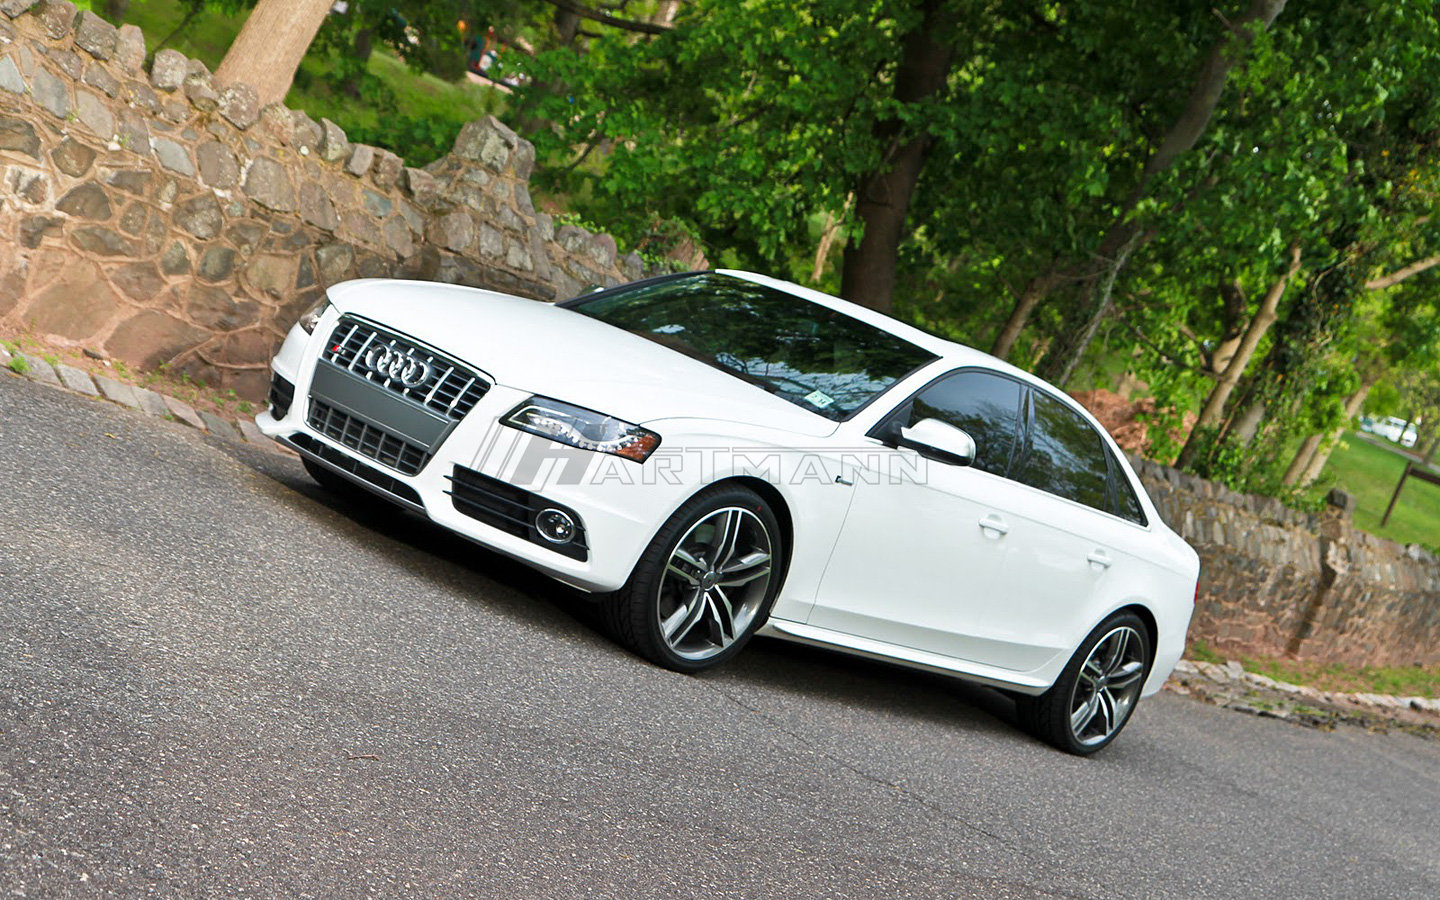 audi rs6 price 2014 audi models B8 S4 Hartmann Free Download Image Of